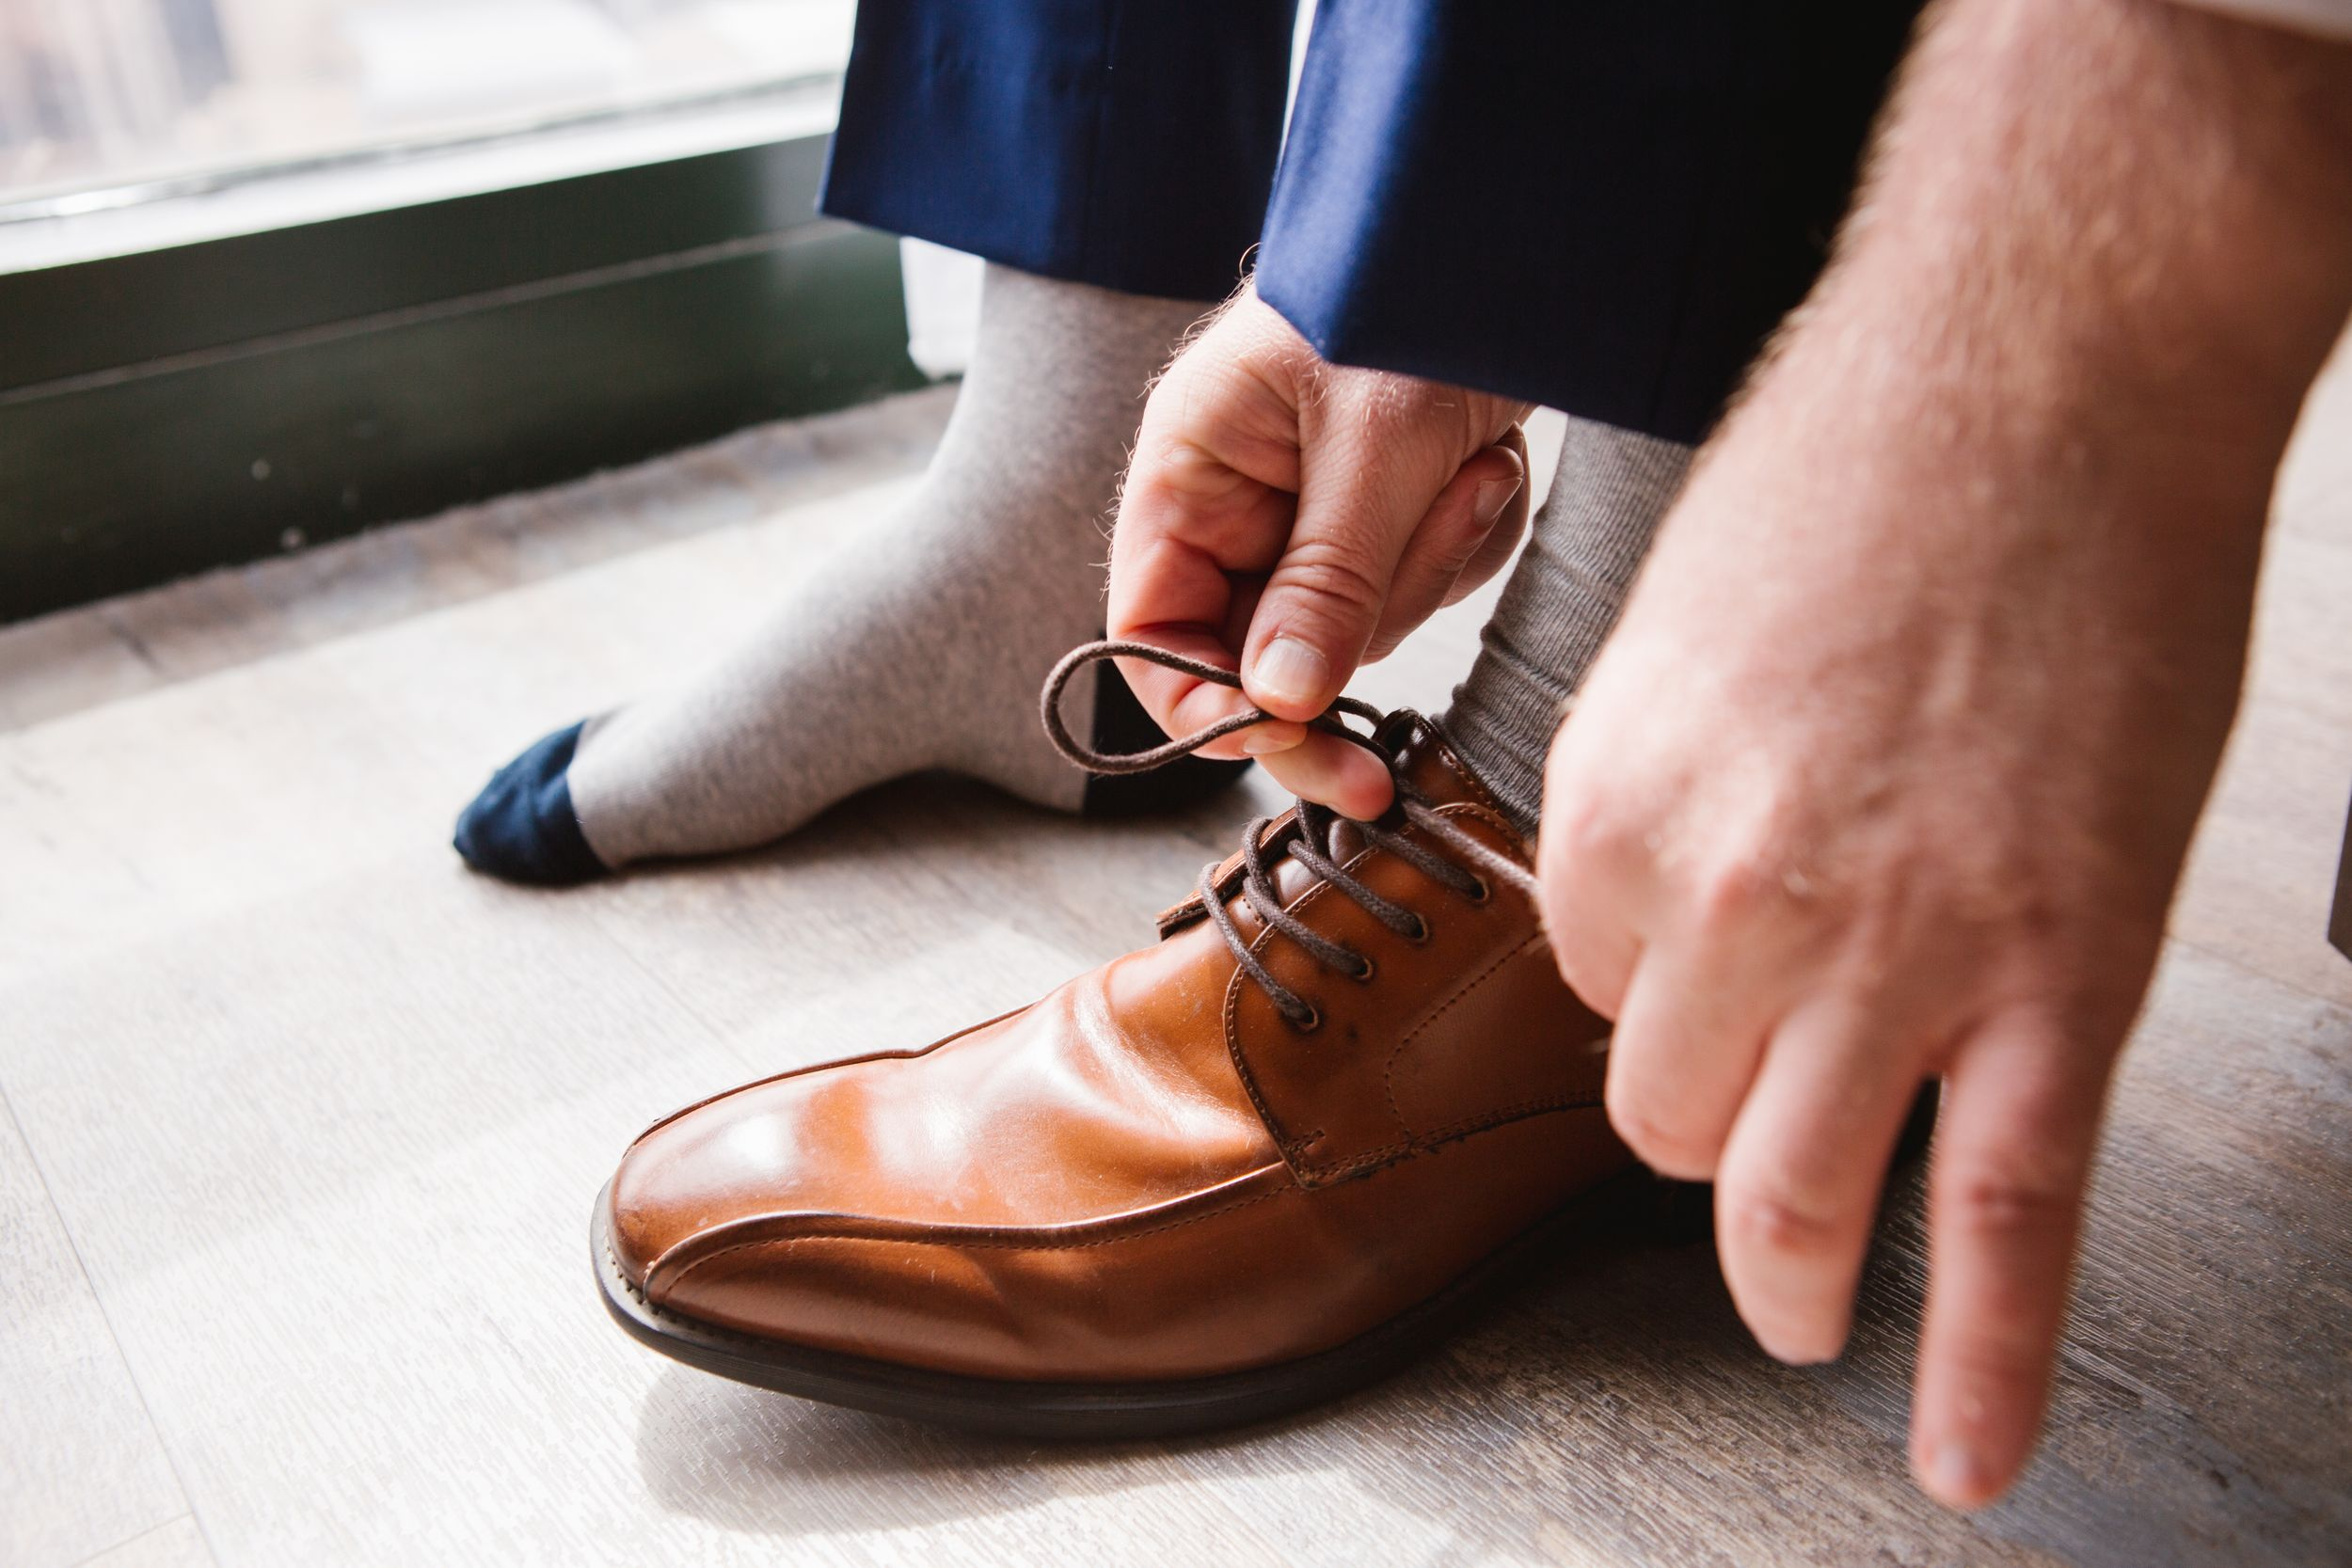 close up of groom tying shoelace on his brown wedding shoes